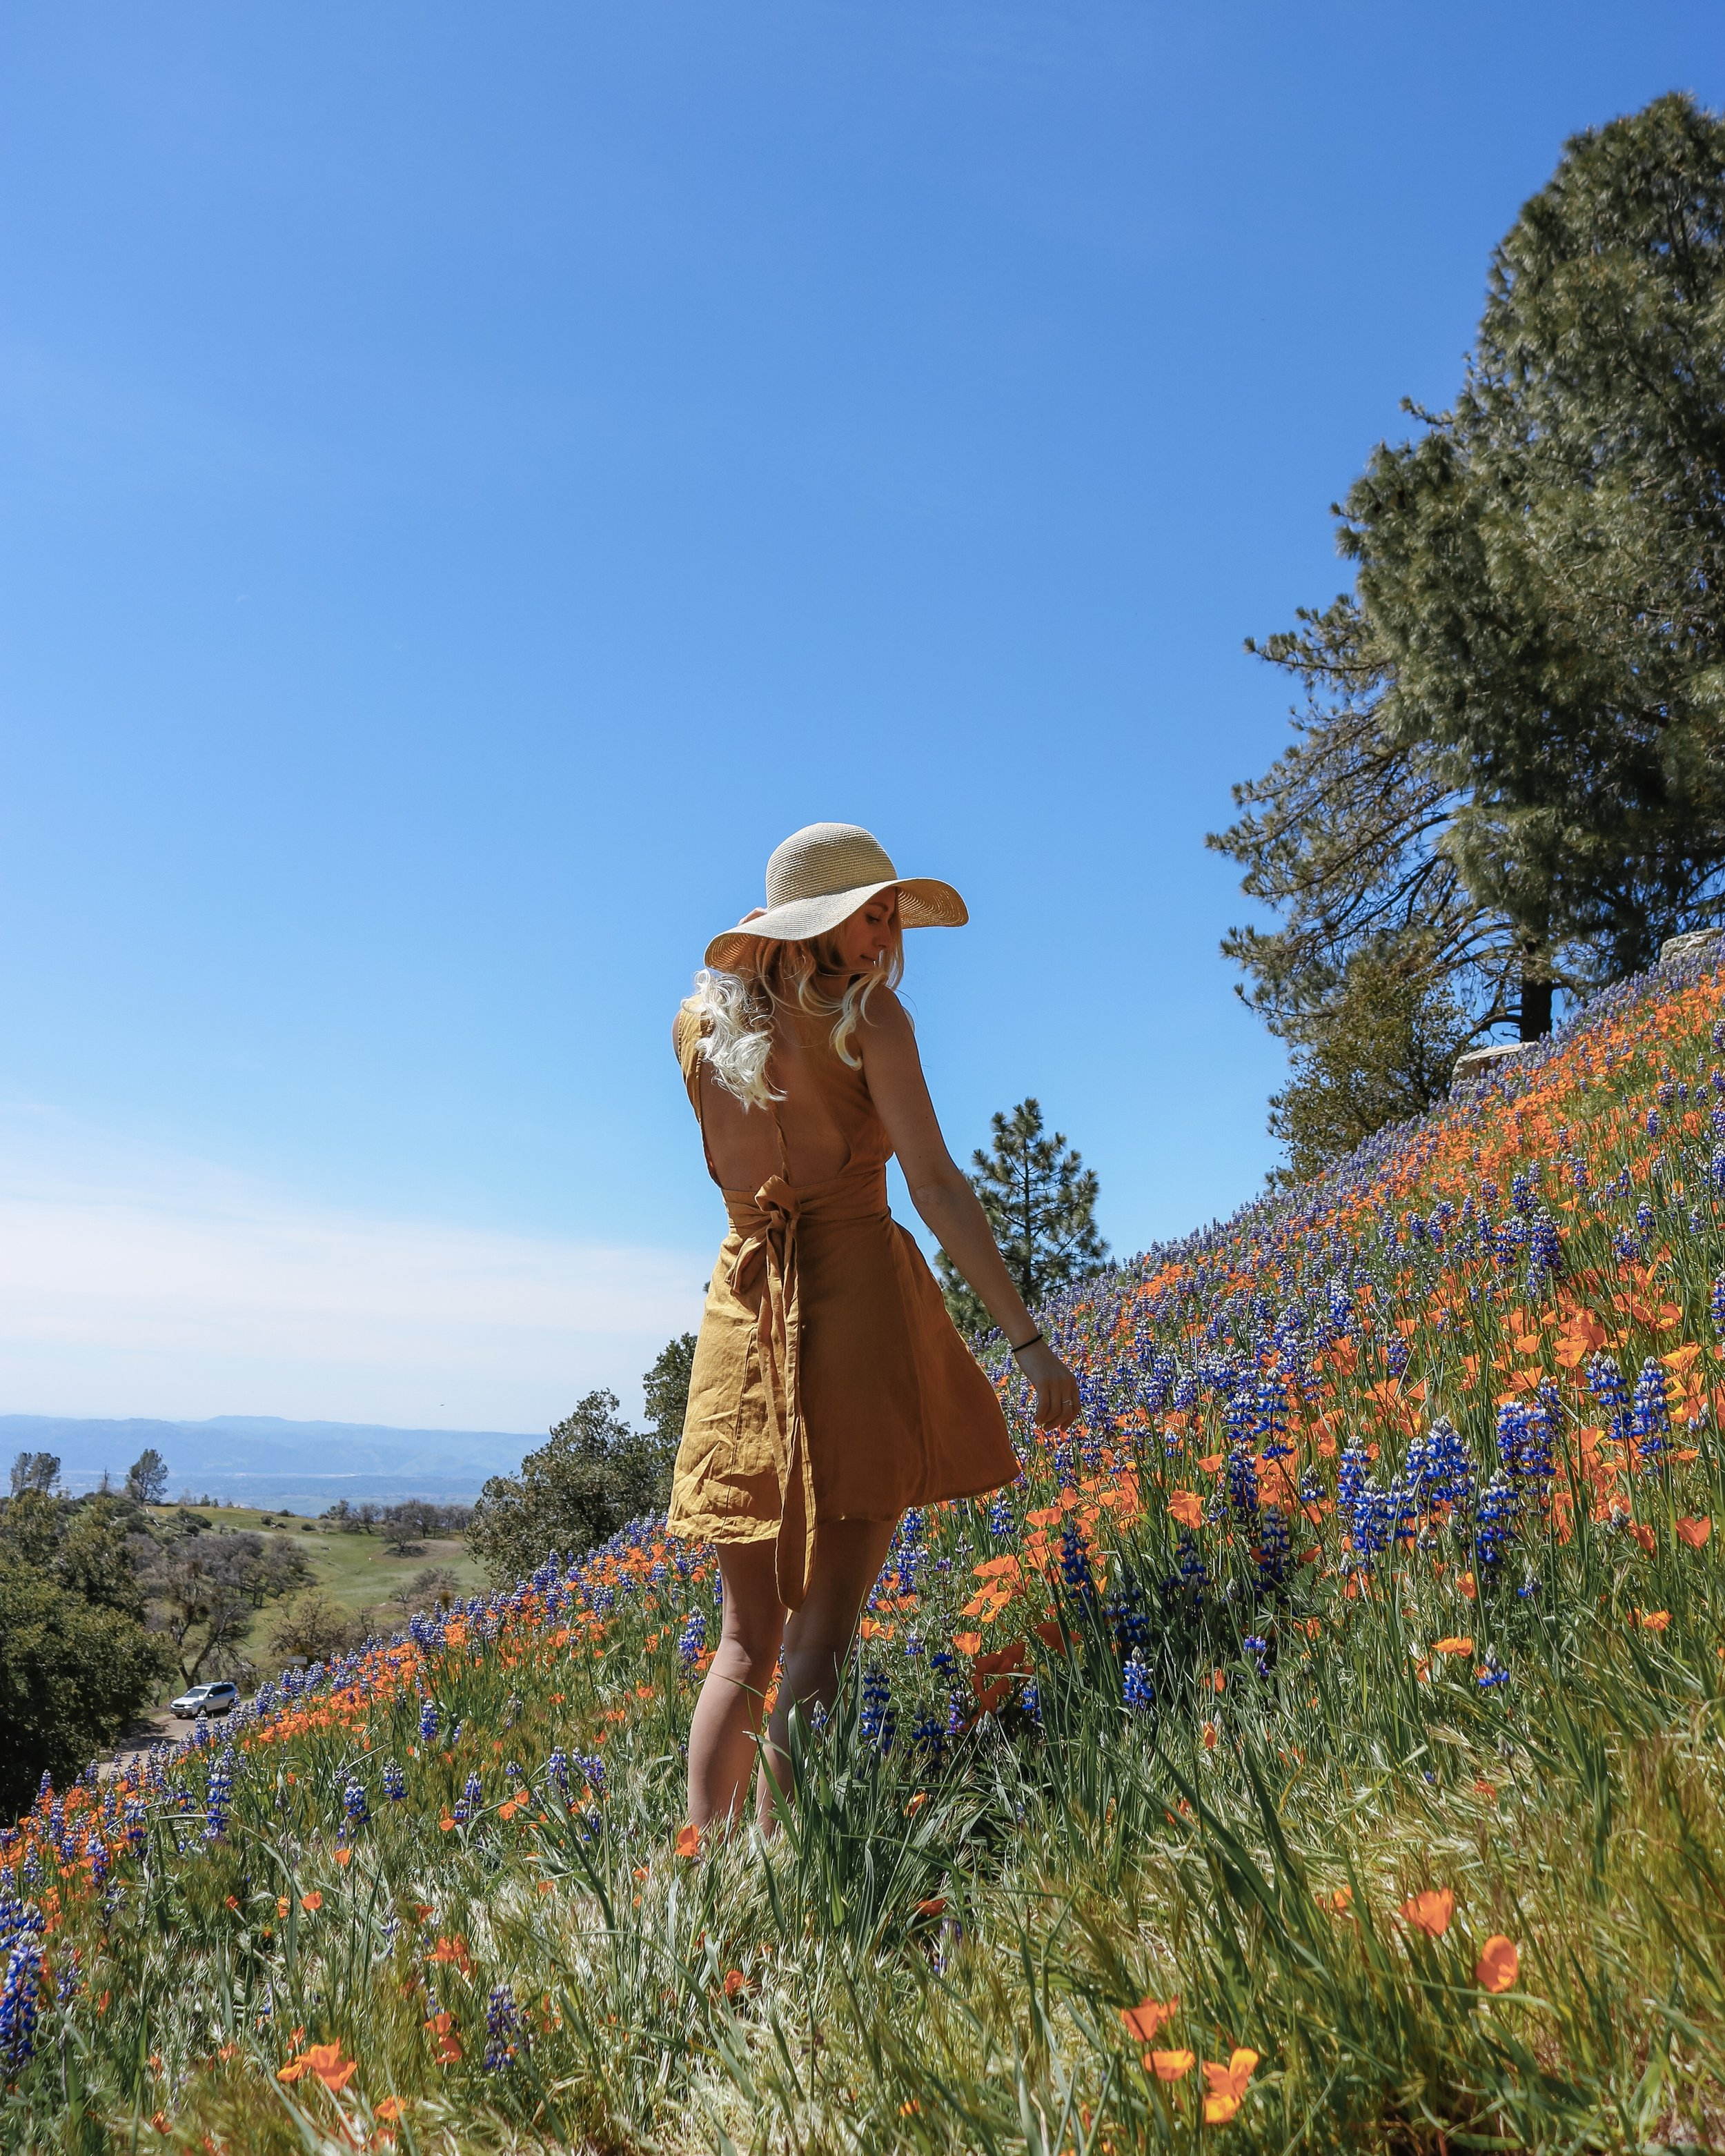 Santa Barbara Super Bloom Figueroa Mountain Santa Ynez